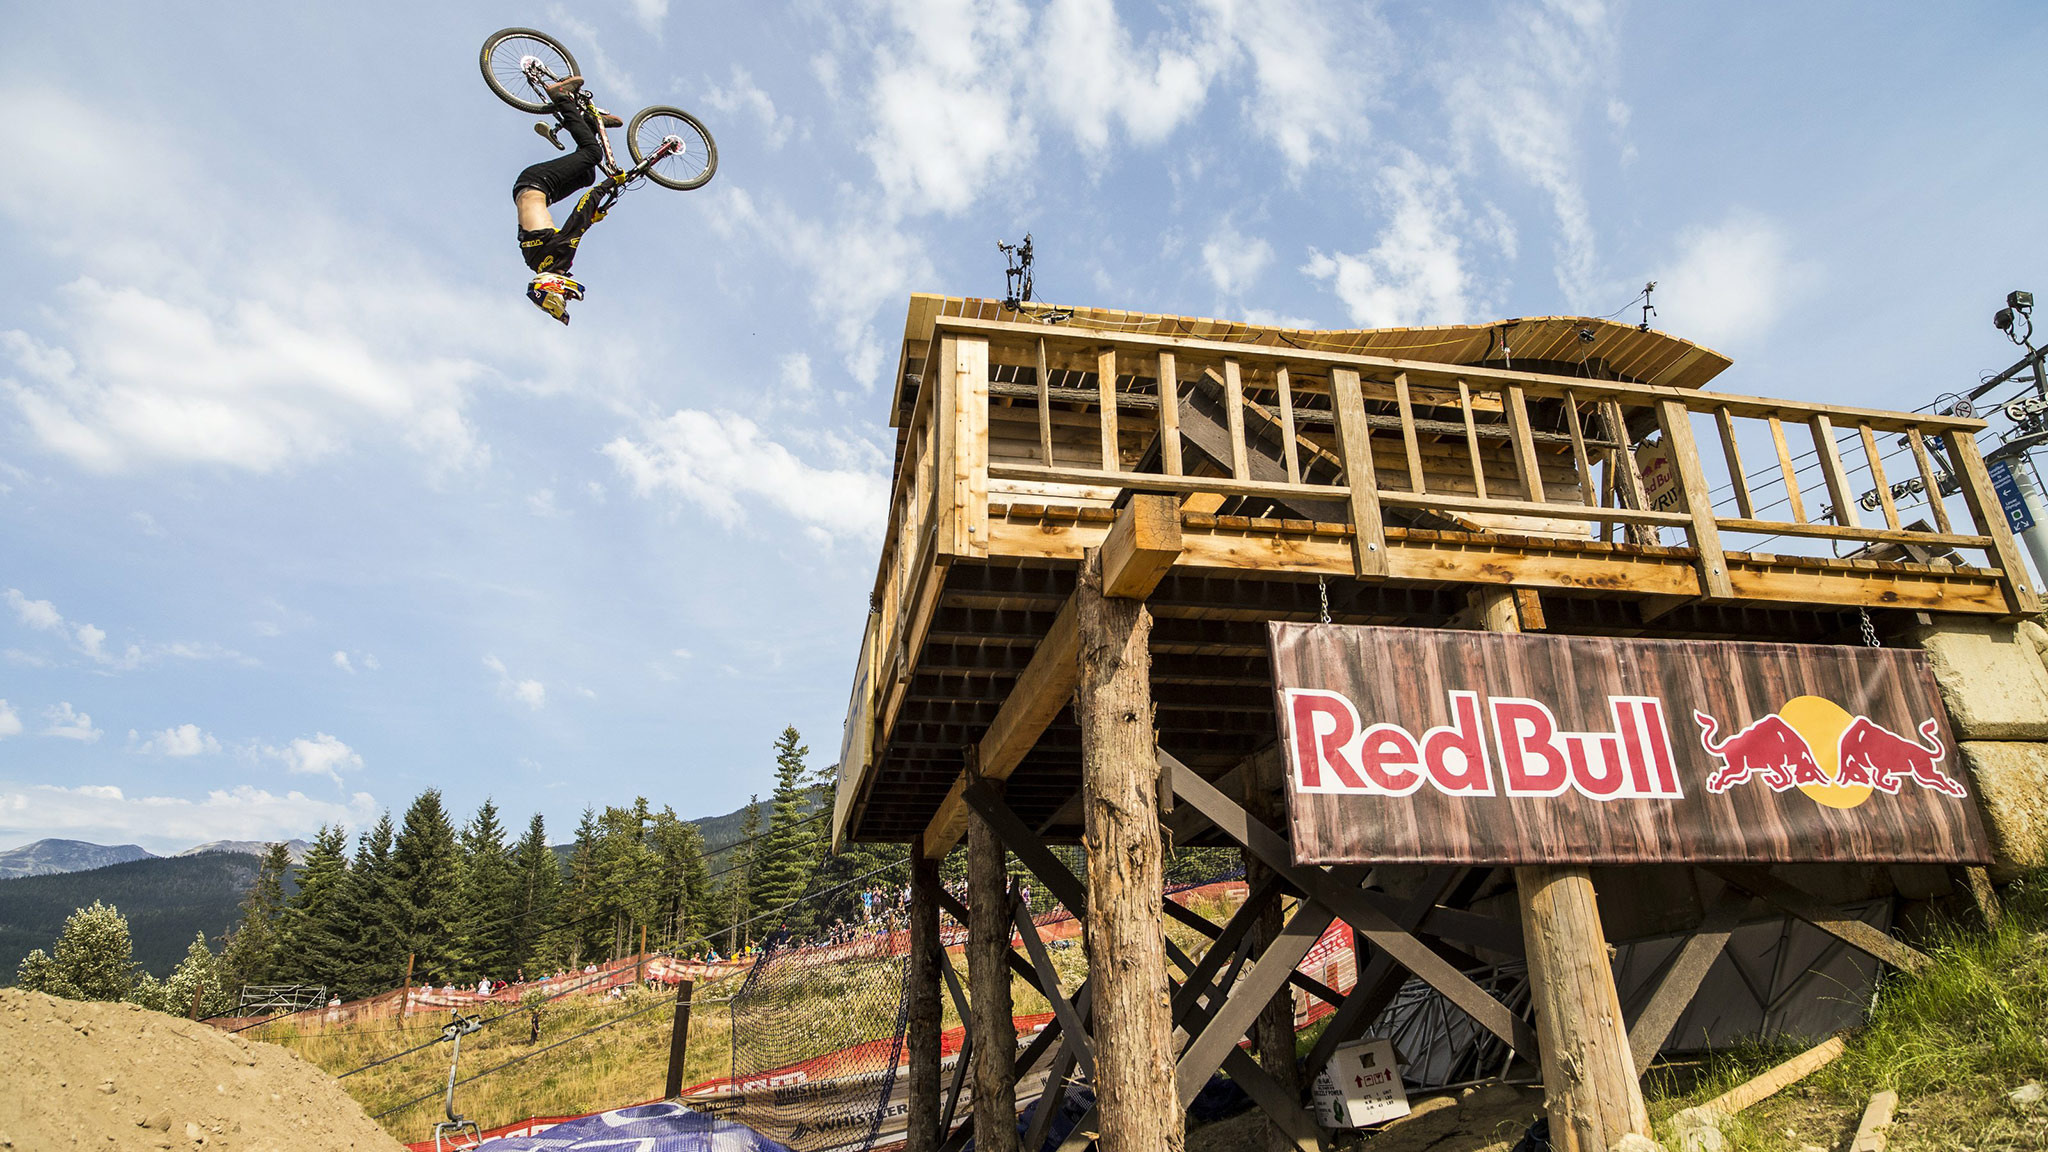 This massive backflip off the cabin feature at the 2012 Red Bull Joyride wasn't enough to get Semenuk on the podium. He still won the overall season title, edging out Martin Soderstrom.